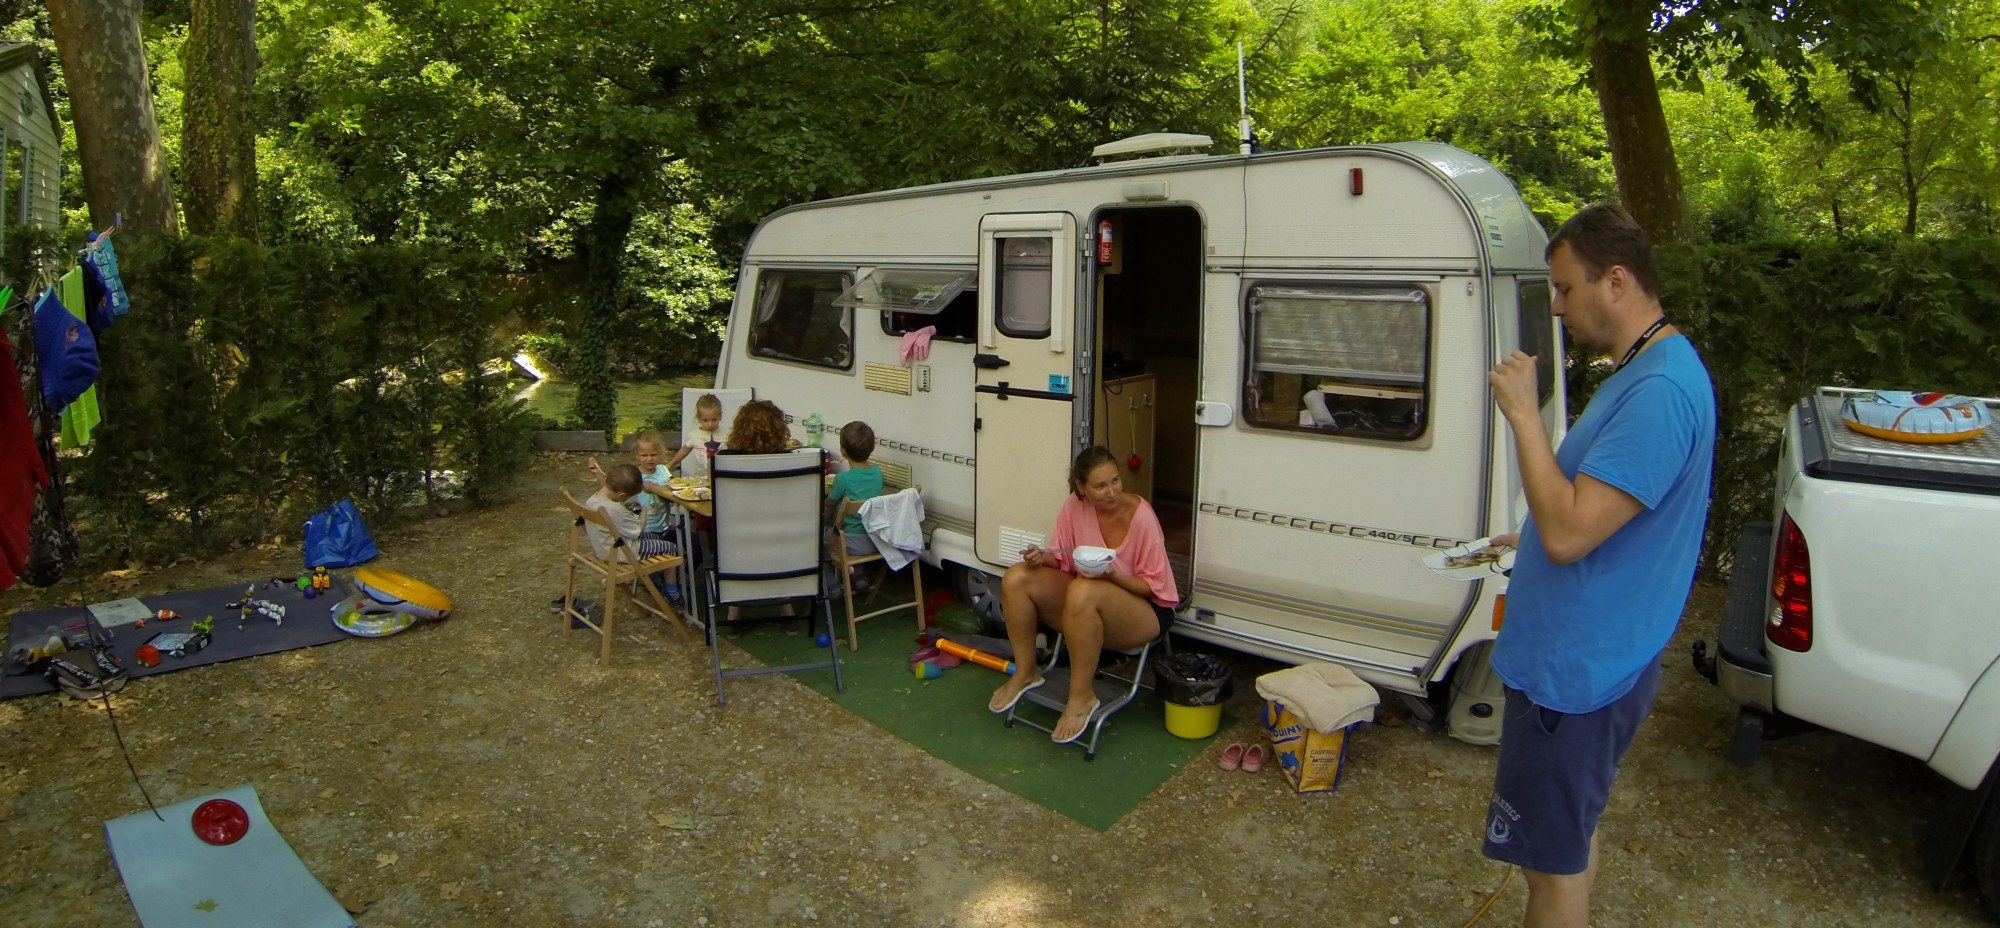 A dinner in afrench campsite